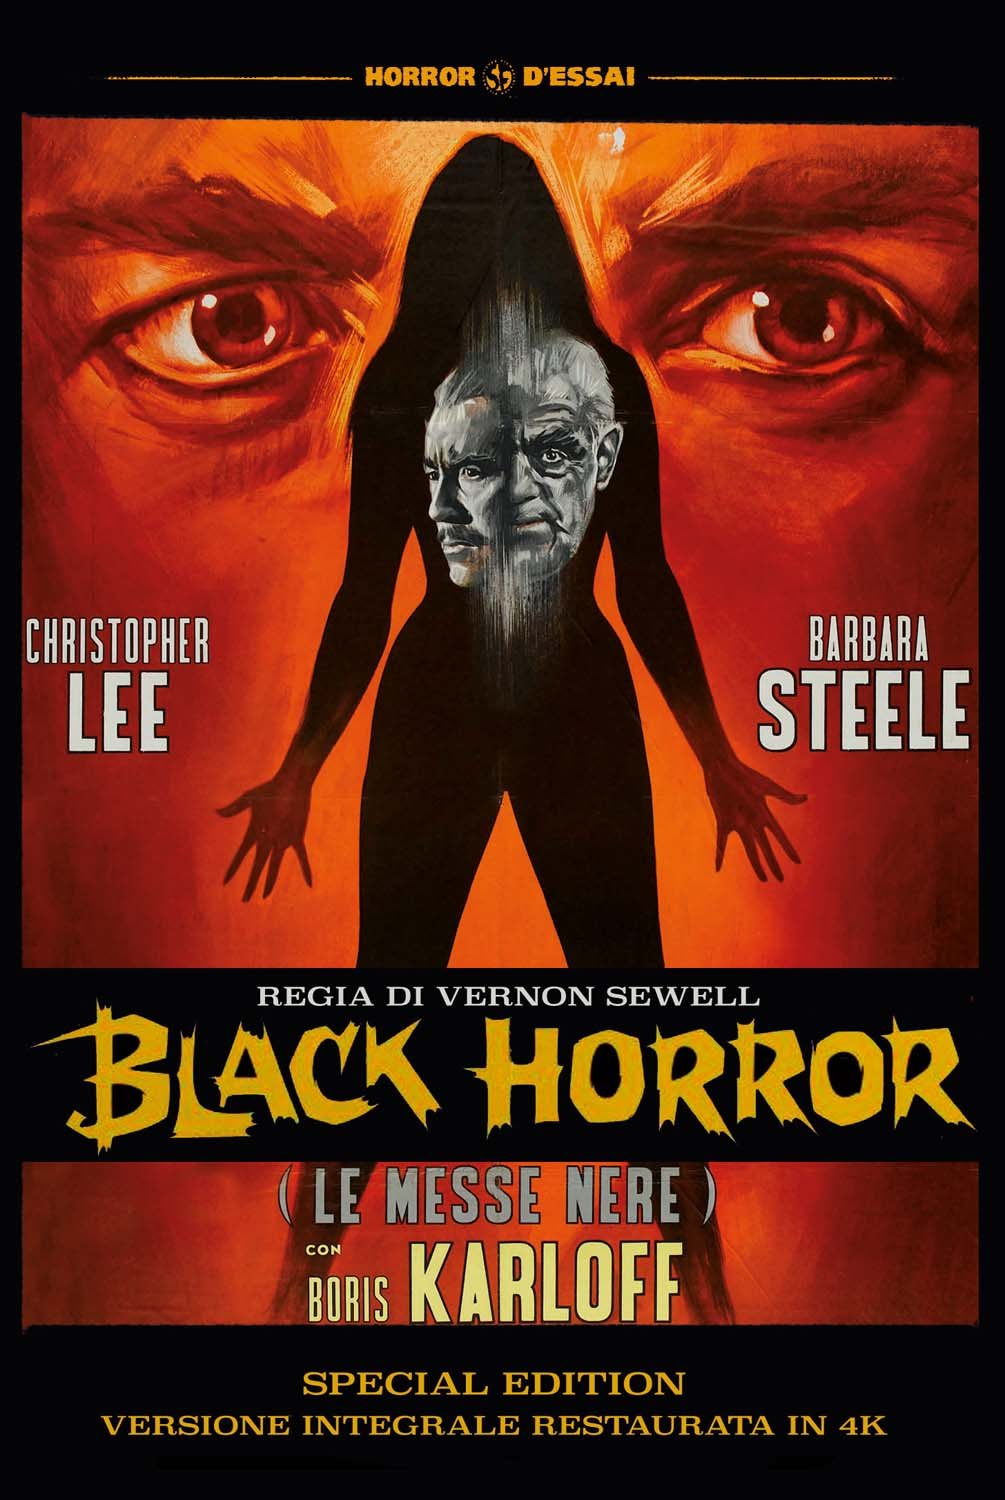 BLACK HORROR - LE MESSE NERE (SPECIAL EDITION) (VERSIONE INTEGRALE RESTAURATA IN 4K) (DVD)